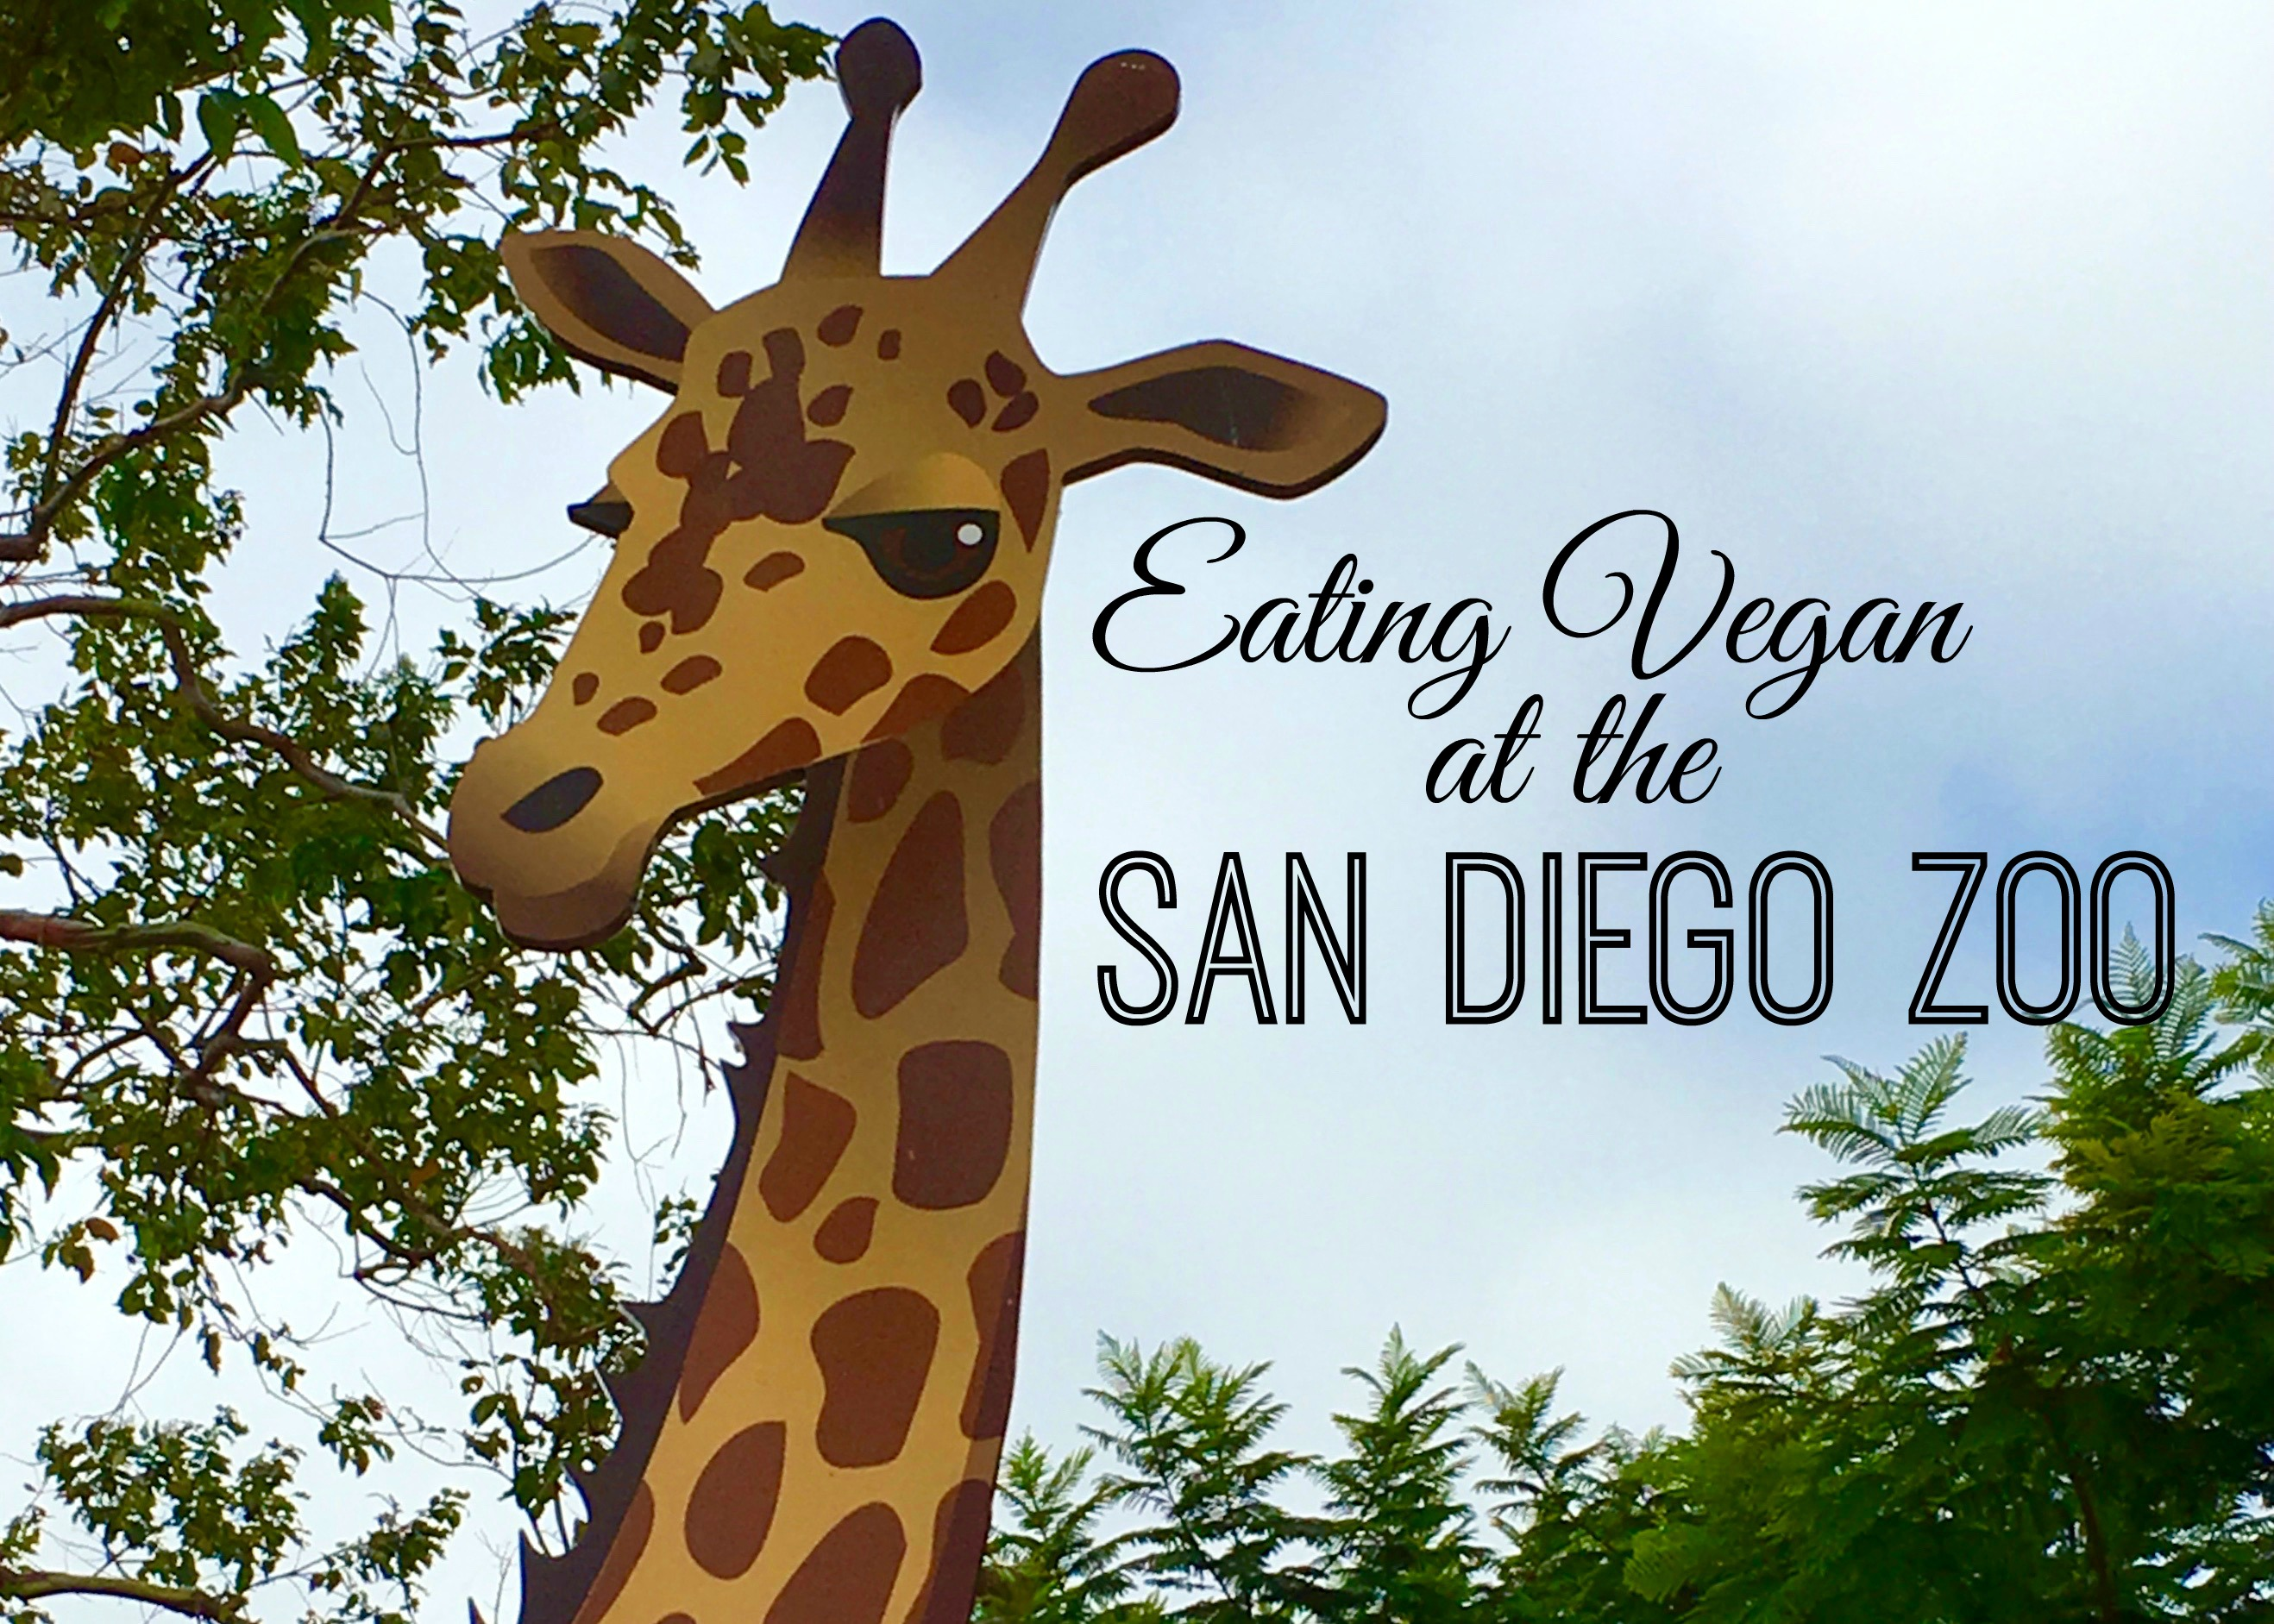 Eating Vegan at San Diego Zoo